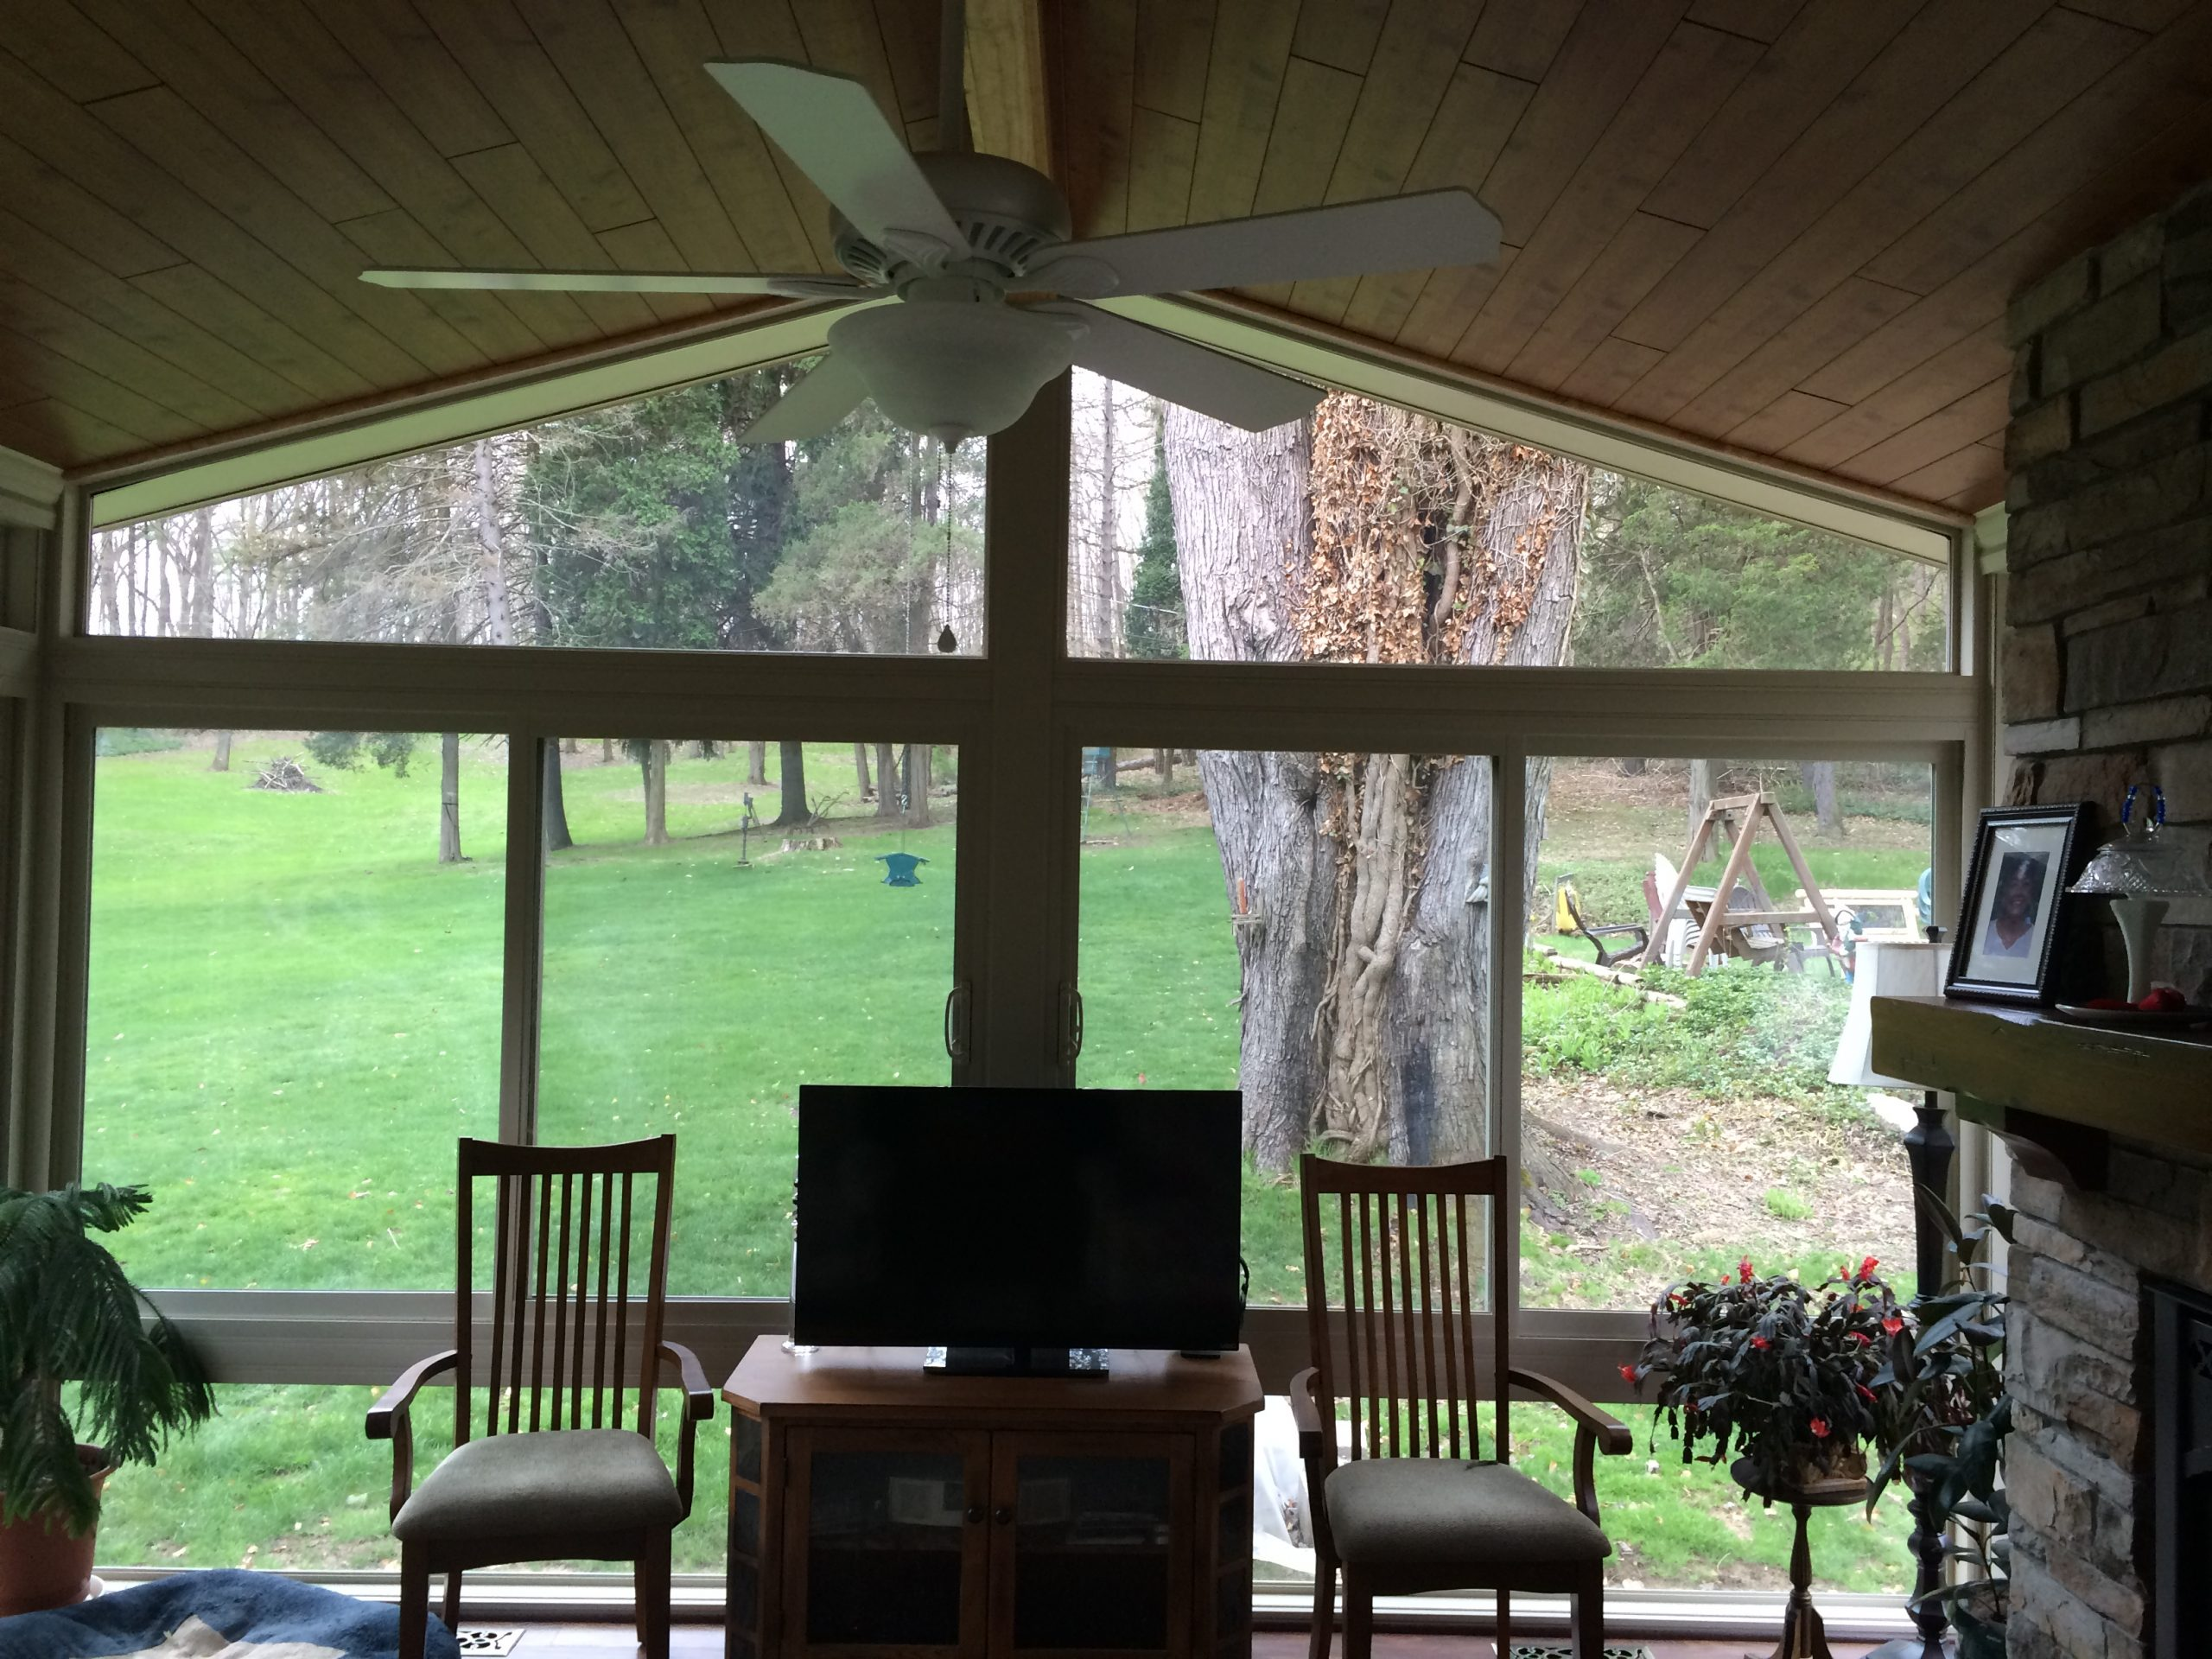 Betterliving fabric shades marketing patio cover recent posts sunrooms - Inside View Of An All Season Vinyl Sunroom With Gable Style Roof By Betterliving Sunrooms